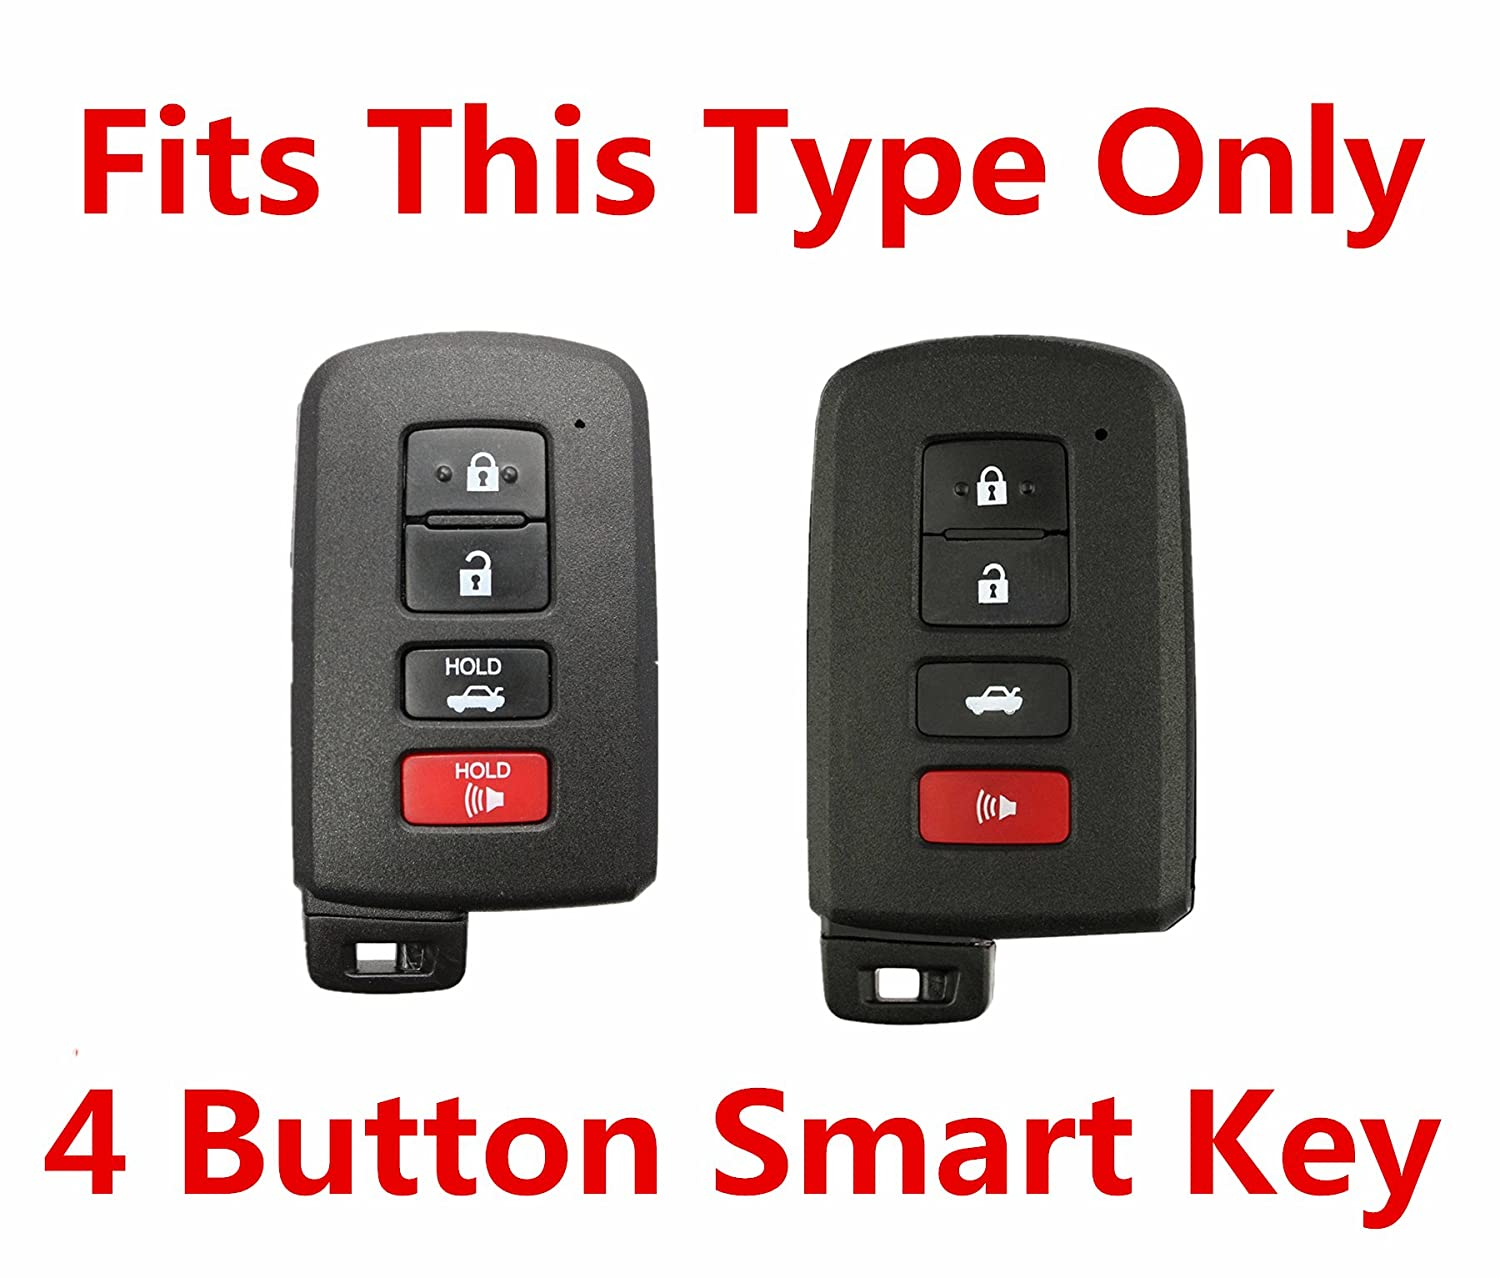 RPKEY Leather Keyless Entry Remote Control Key Fob Cover Case protector For 2014 2015 2016 2017 Toyota Avalon Camry Corolla RAV4 Highlander HYQ14FBA 89904-06140 1551A-14FBA ASD